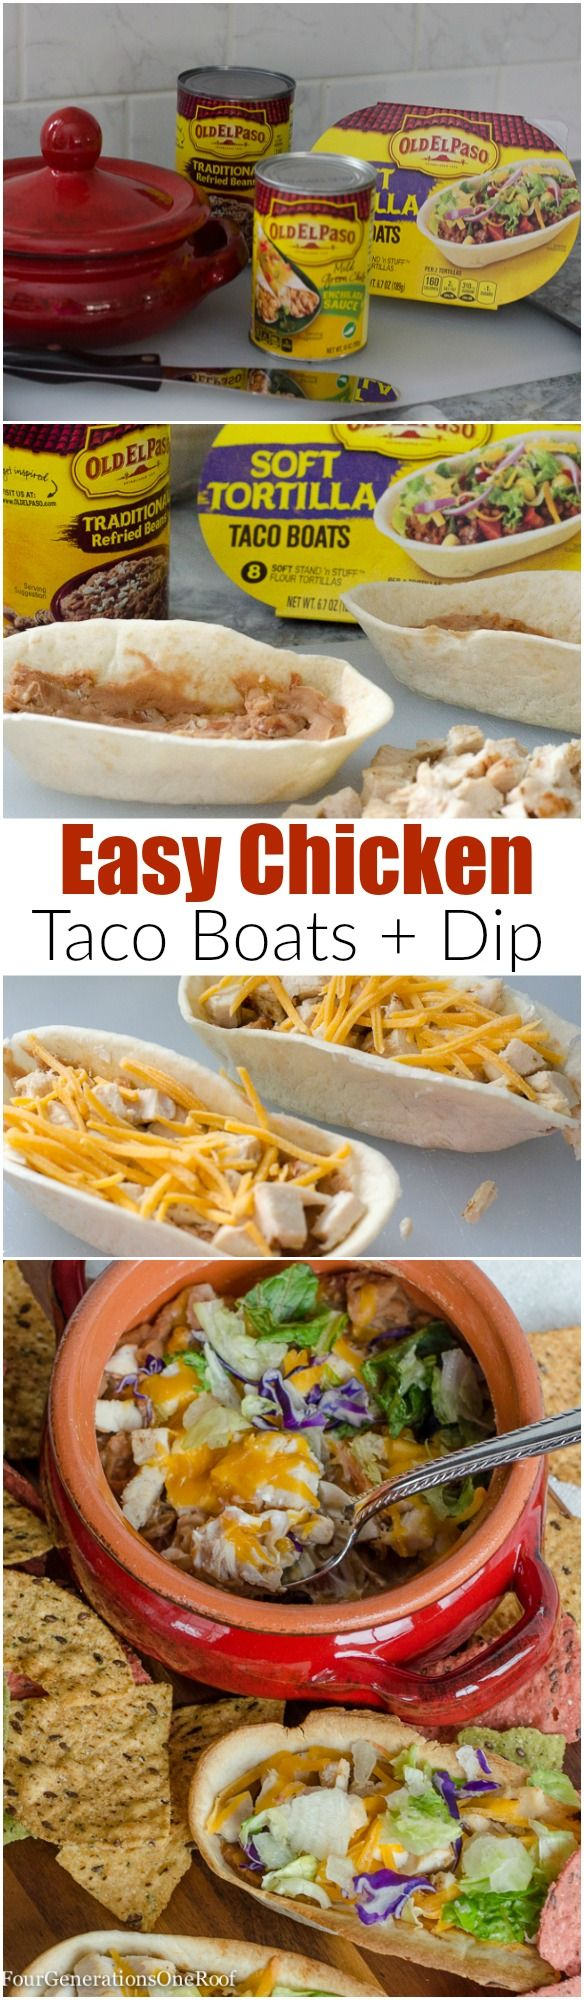 Mexican Chicken Taco Boats dip. Quick and easy recipe that is done in 8 minutes with a 10 minute prep time. Perfect for game day! (Mexican Recipes For Kids)